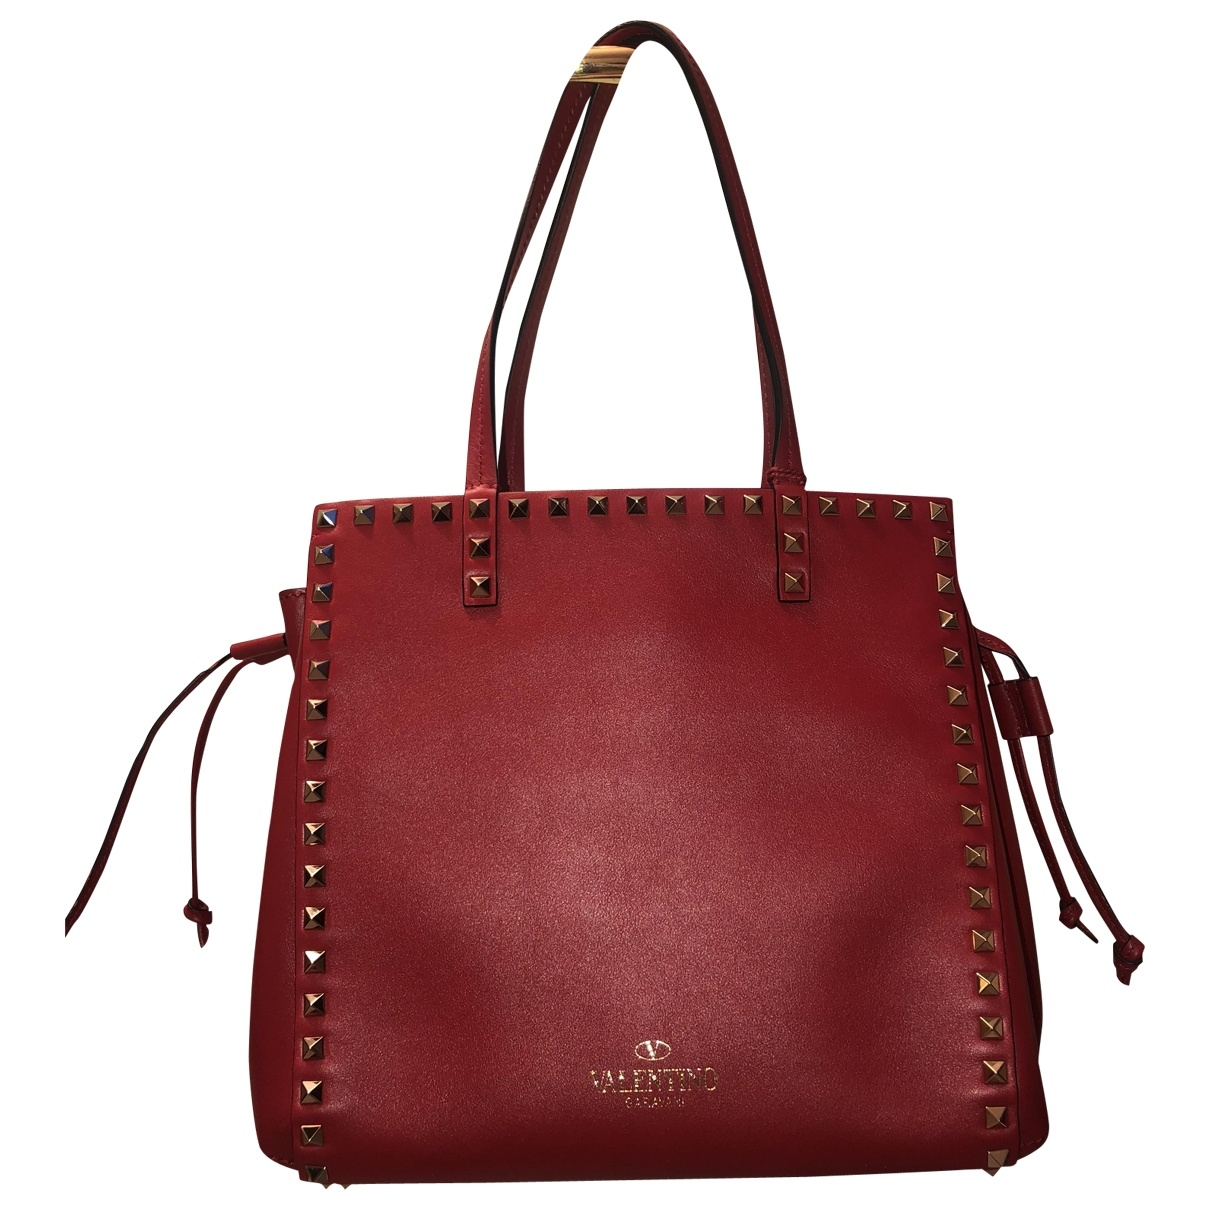 Valentino Garavani Rockstud Red Leather handbag for Women \N